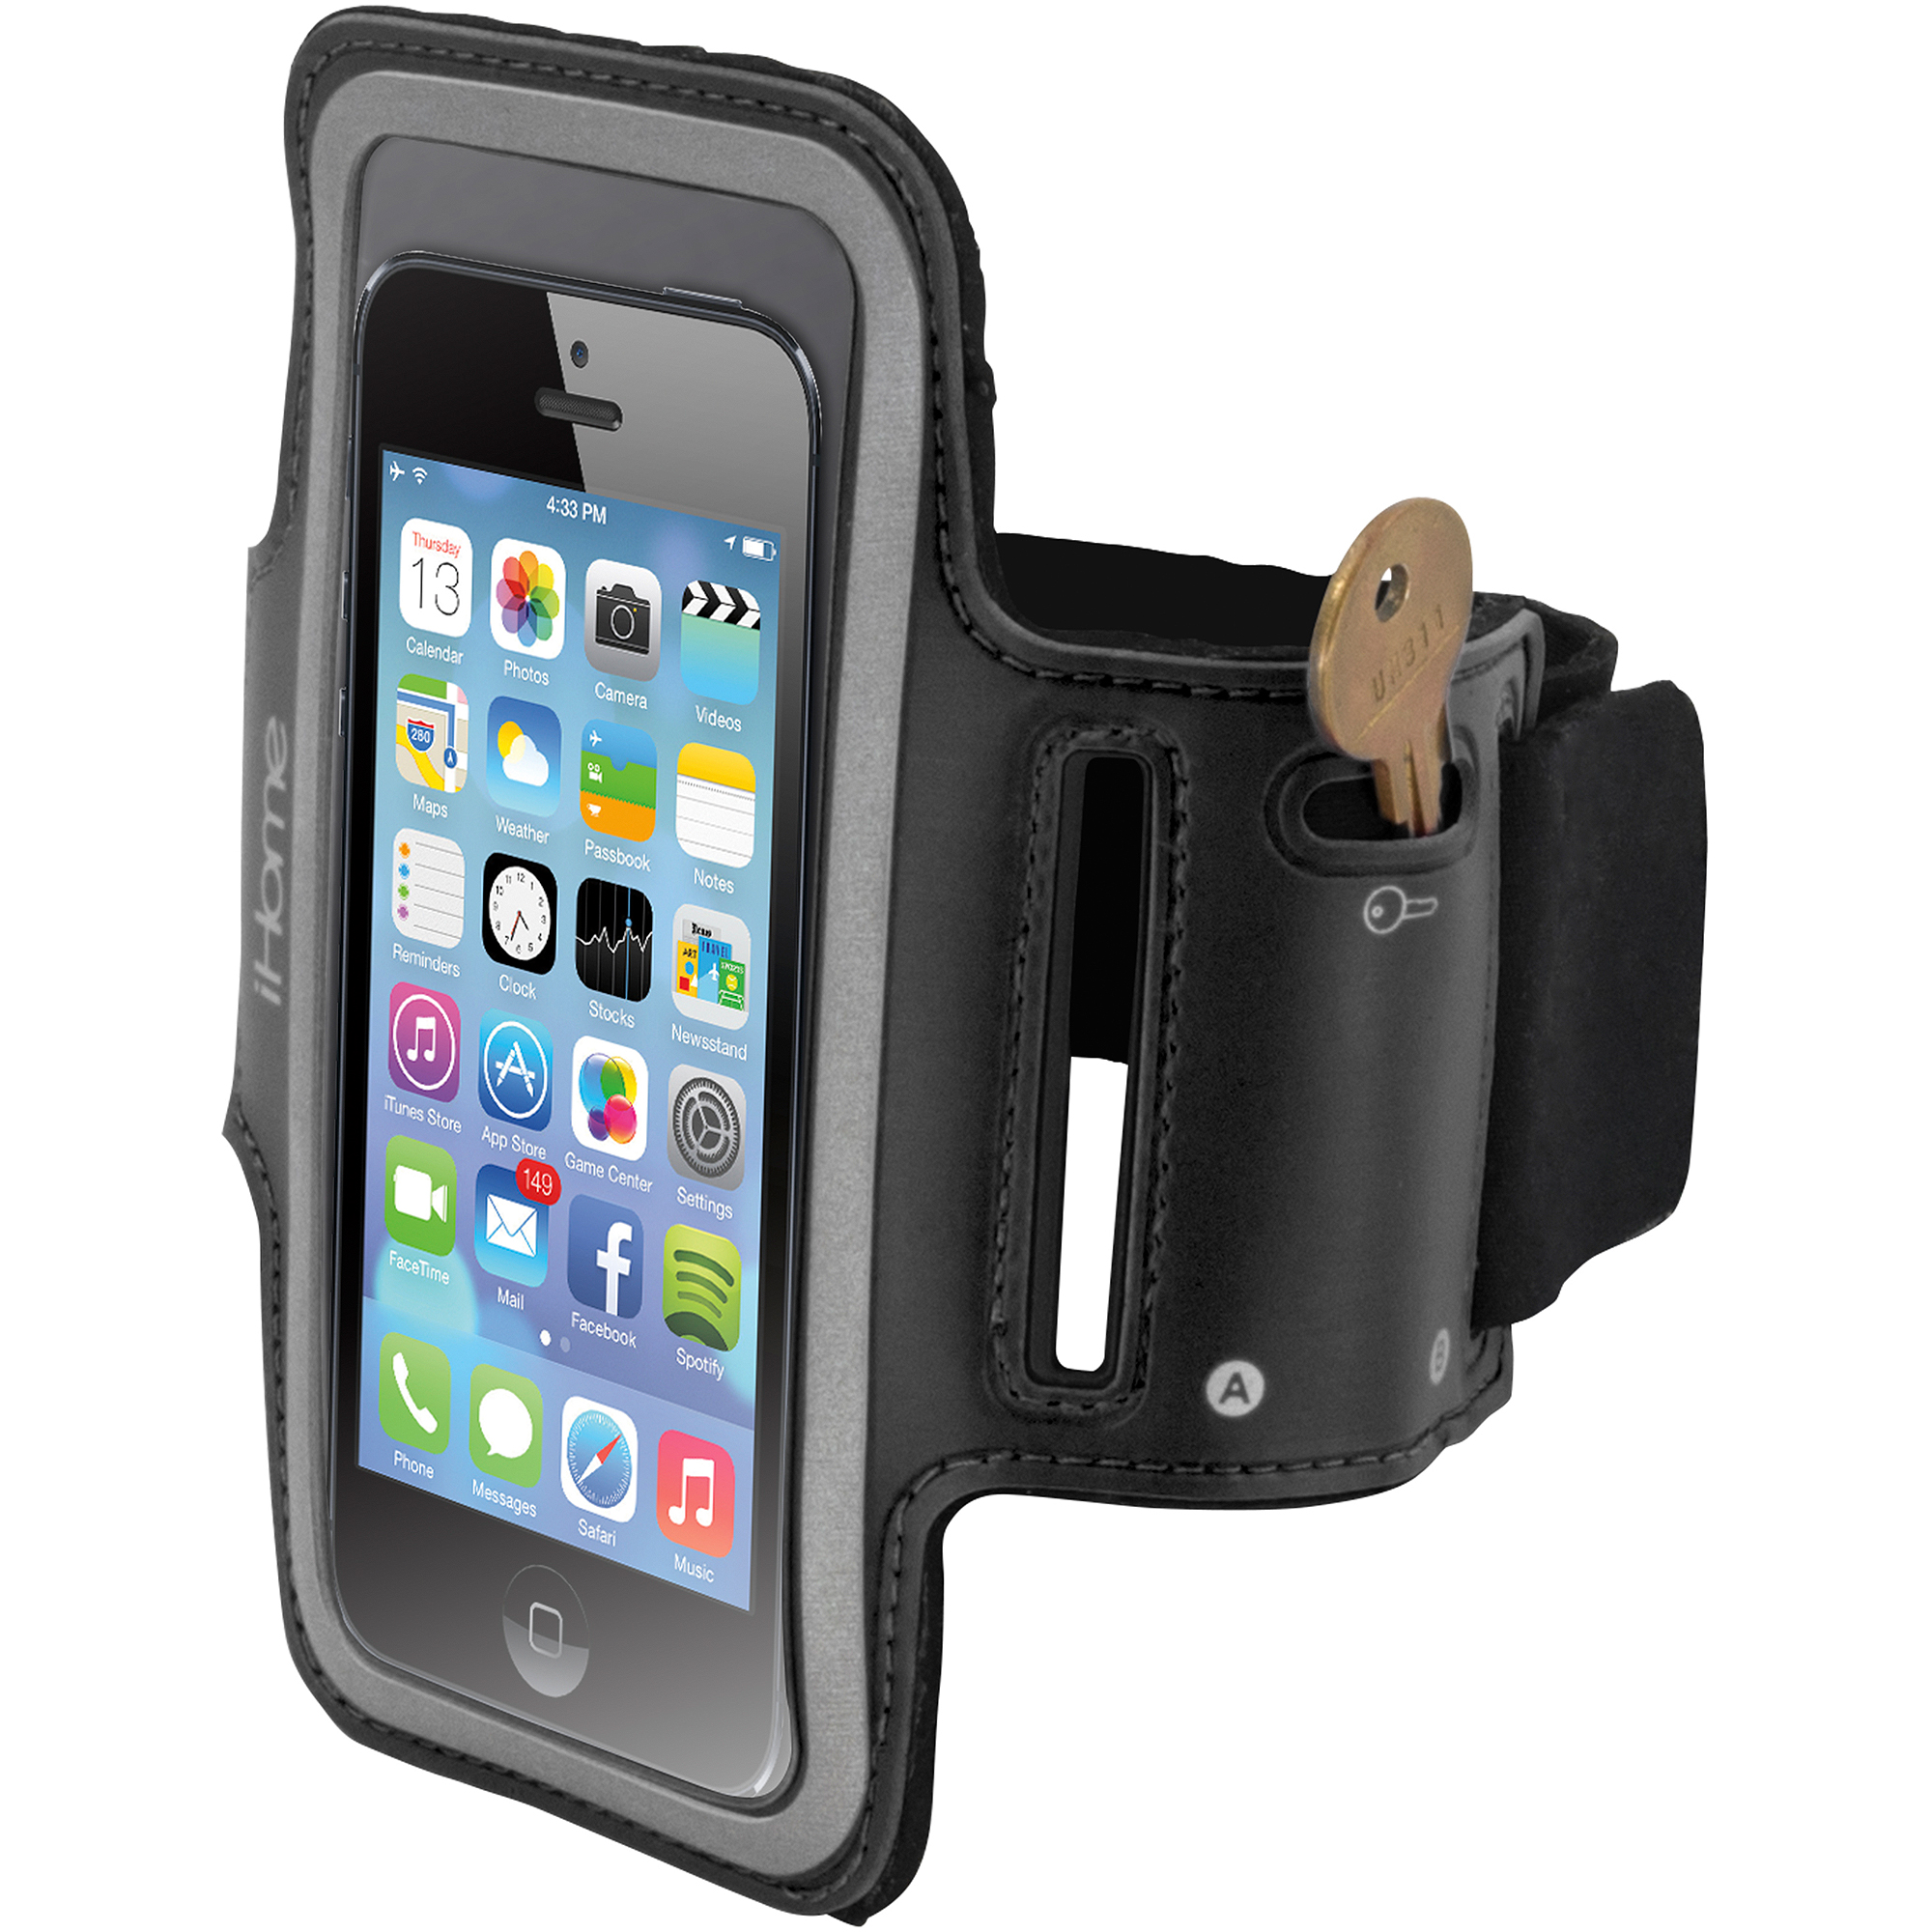 iHome IH-5P141B Sport Armband for iPhone 4/4S/5 and iPod touch,  Black